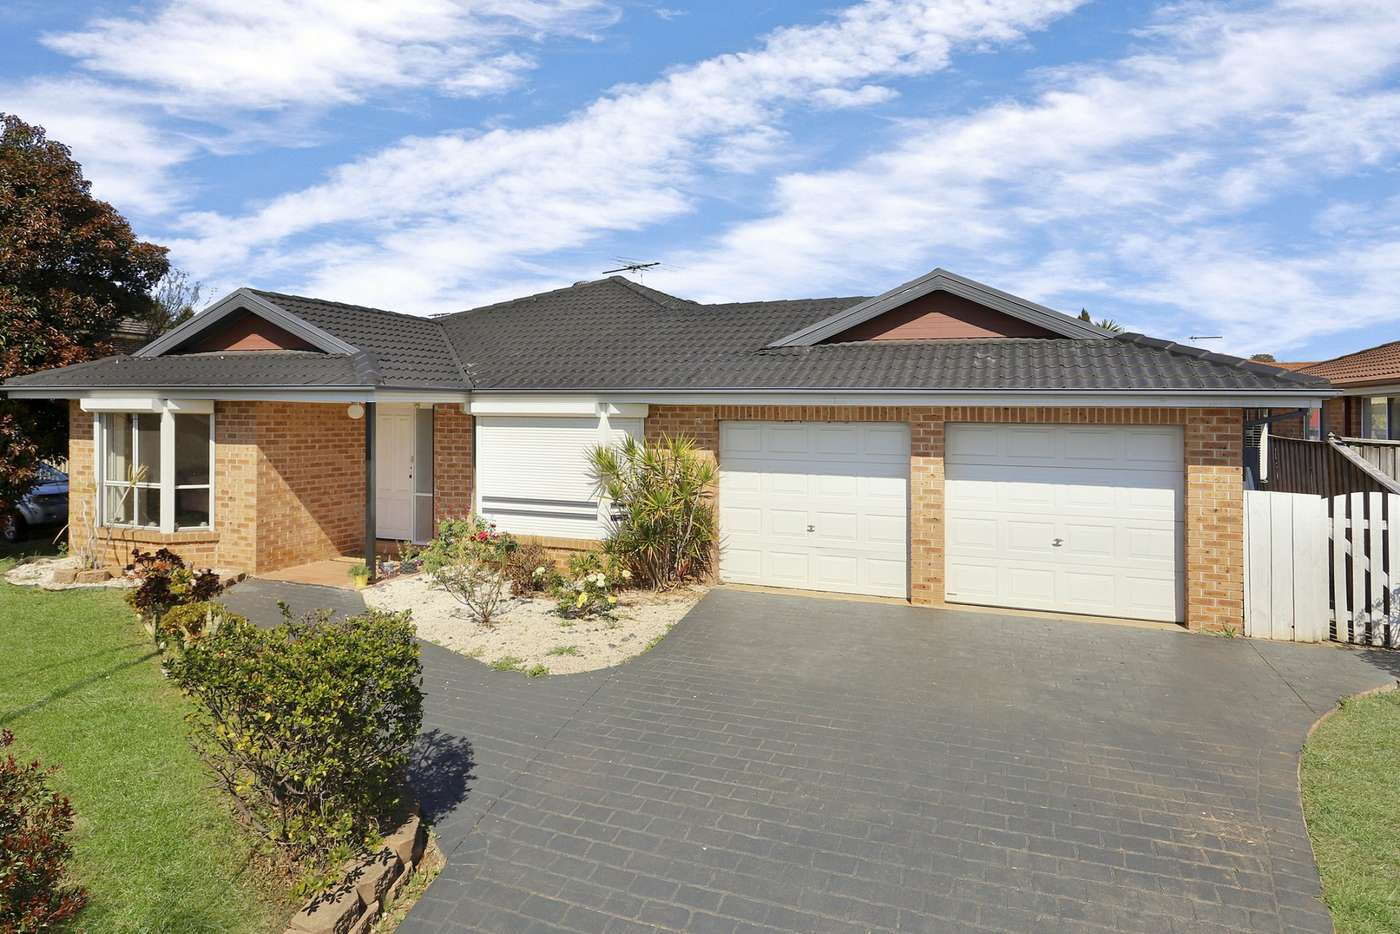 Main view of Homely house listing, 188 Meurants Lane, Glenwood NSW 2768